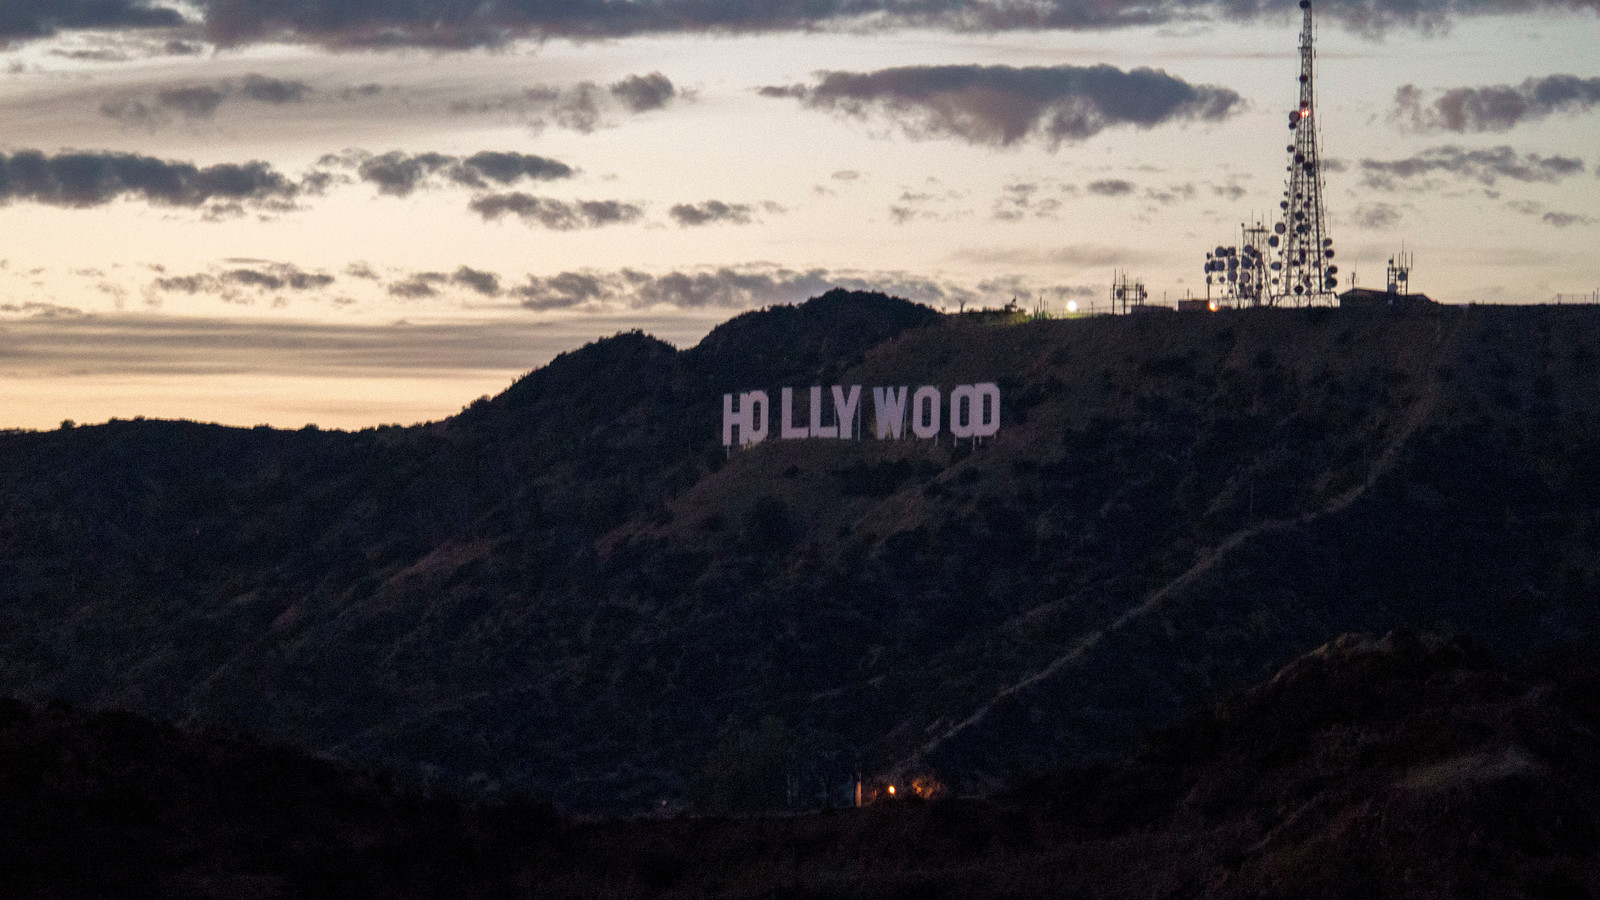 Hollywood sign at dusk at the Griffith Observatory